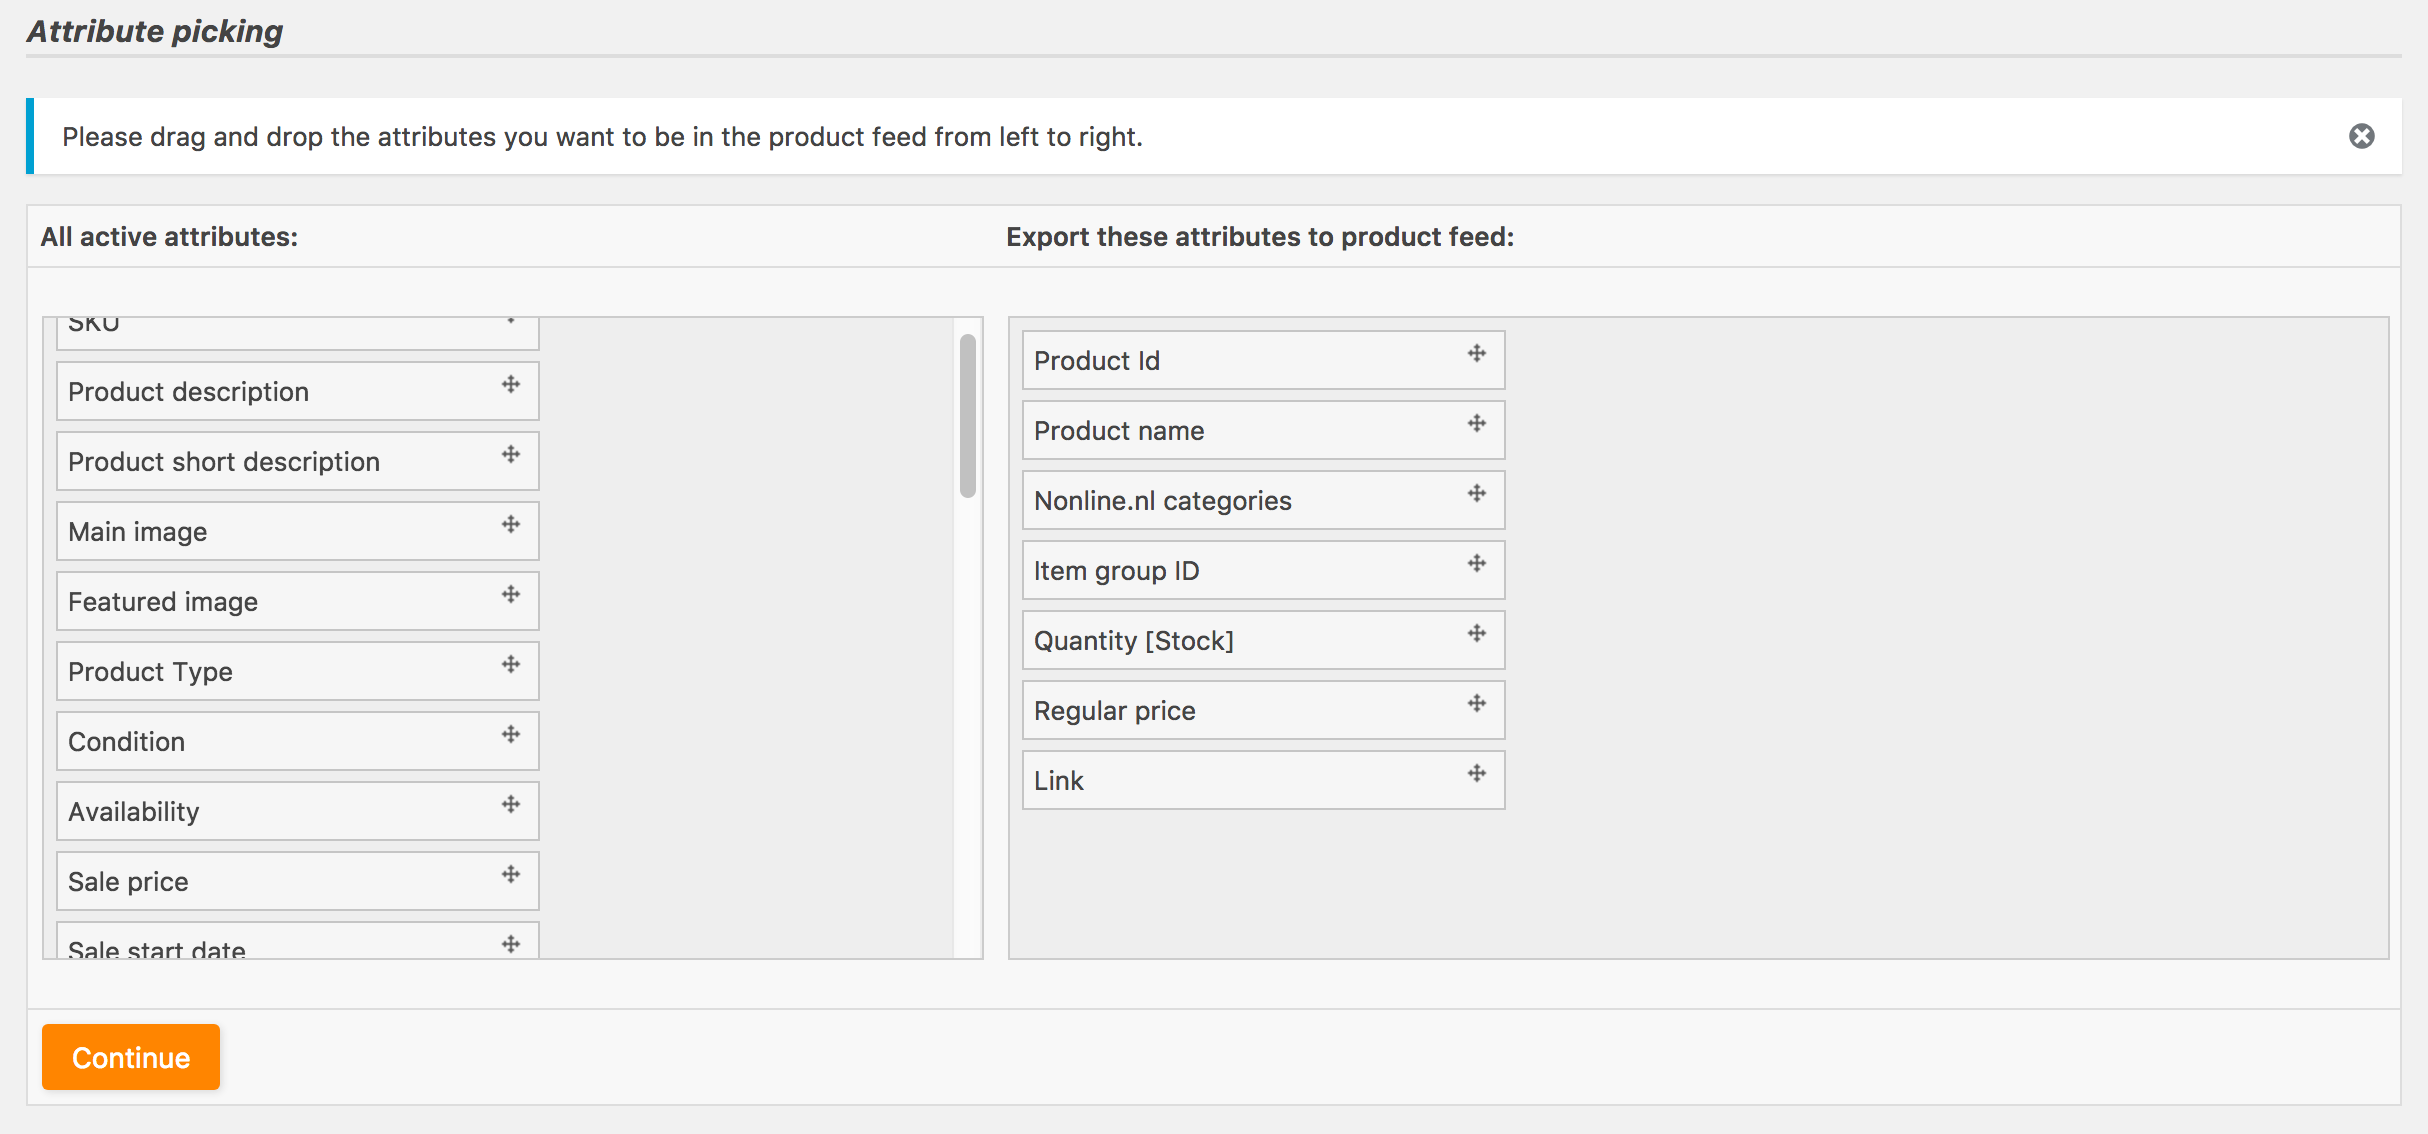 Drag and drop the attributes that you want to put in the product feed